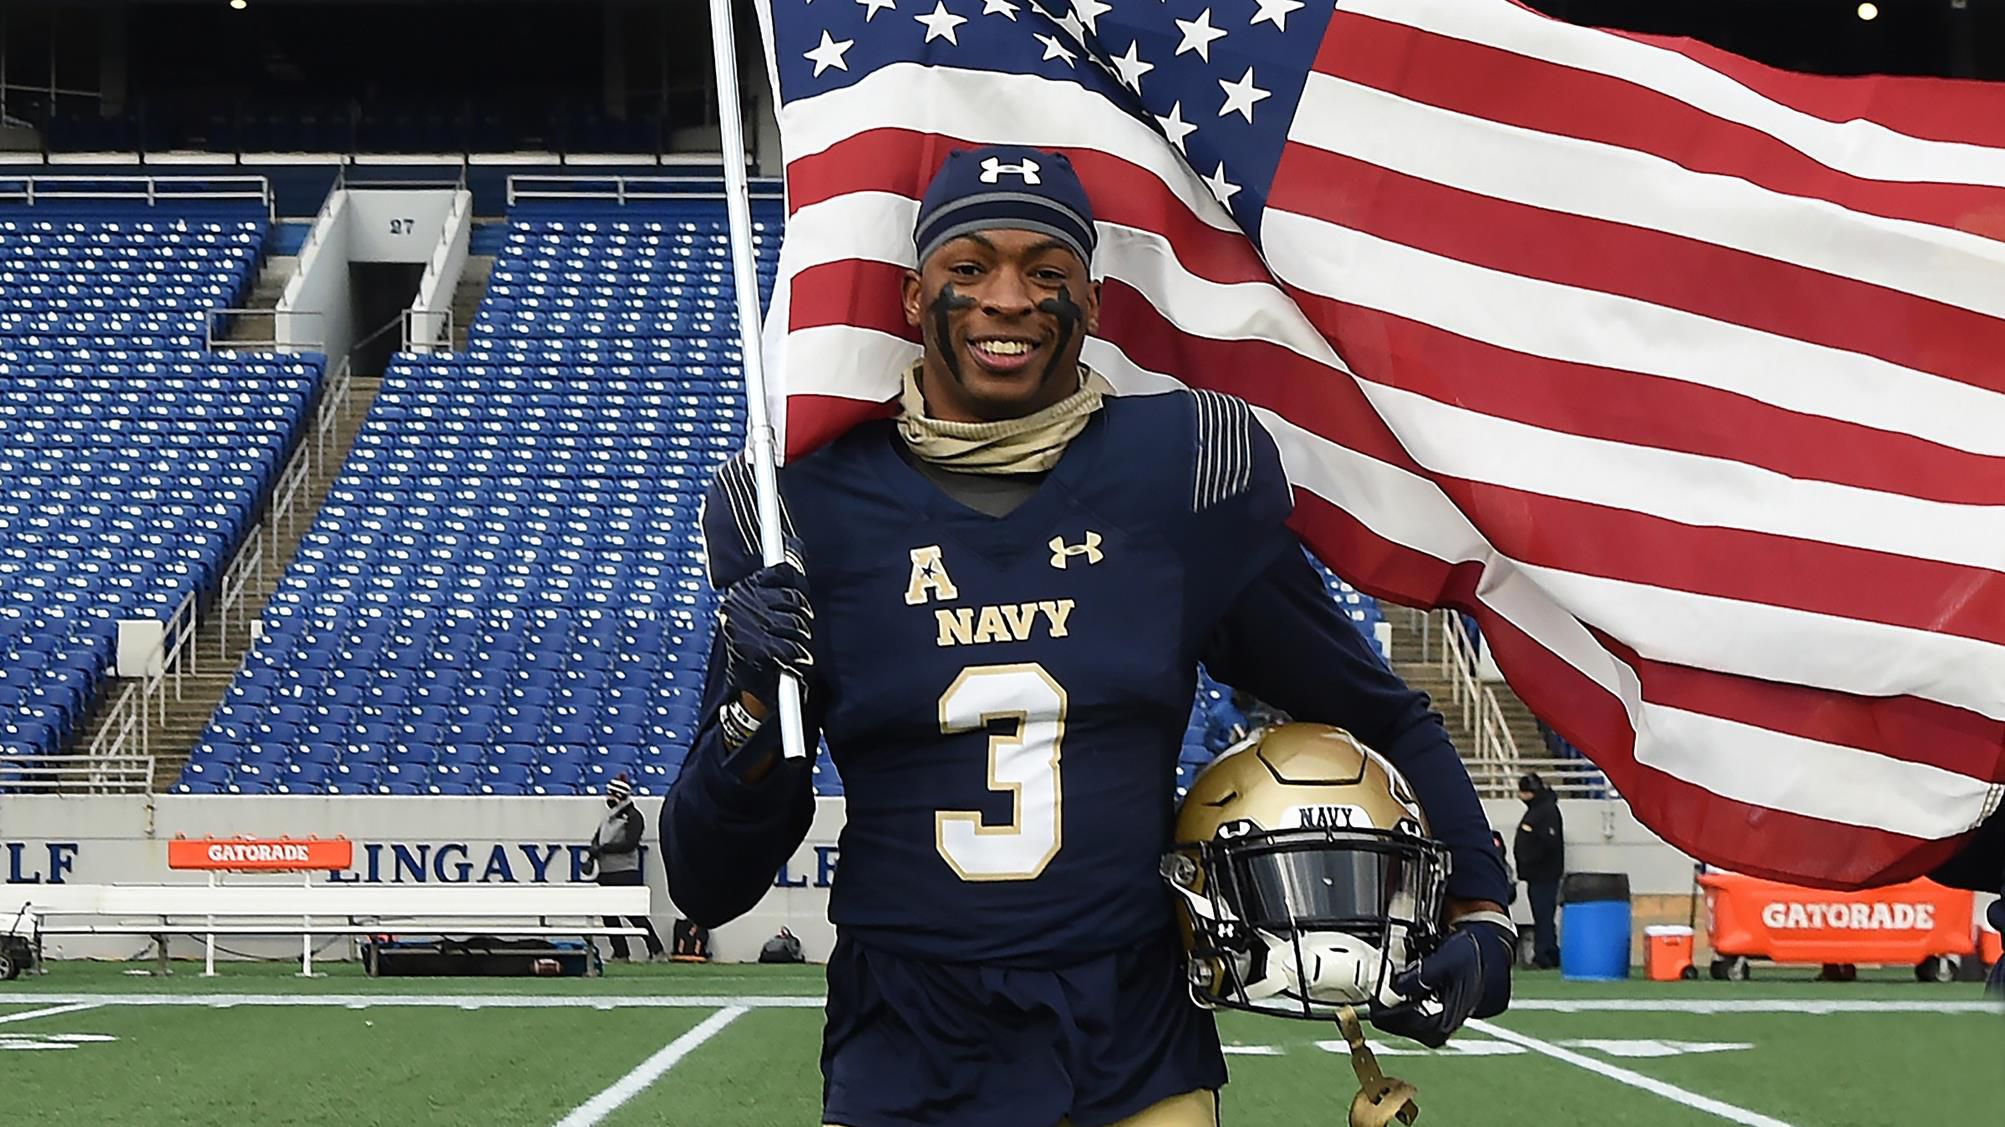 Navy says no to NFL hopeful's request to postpone service, pursue Buccaneers roster spot